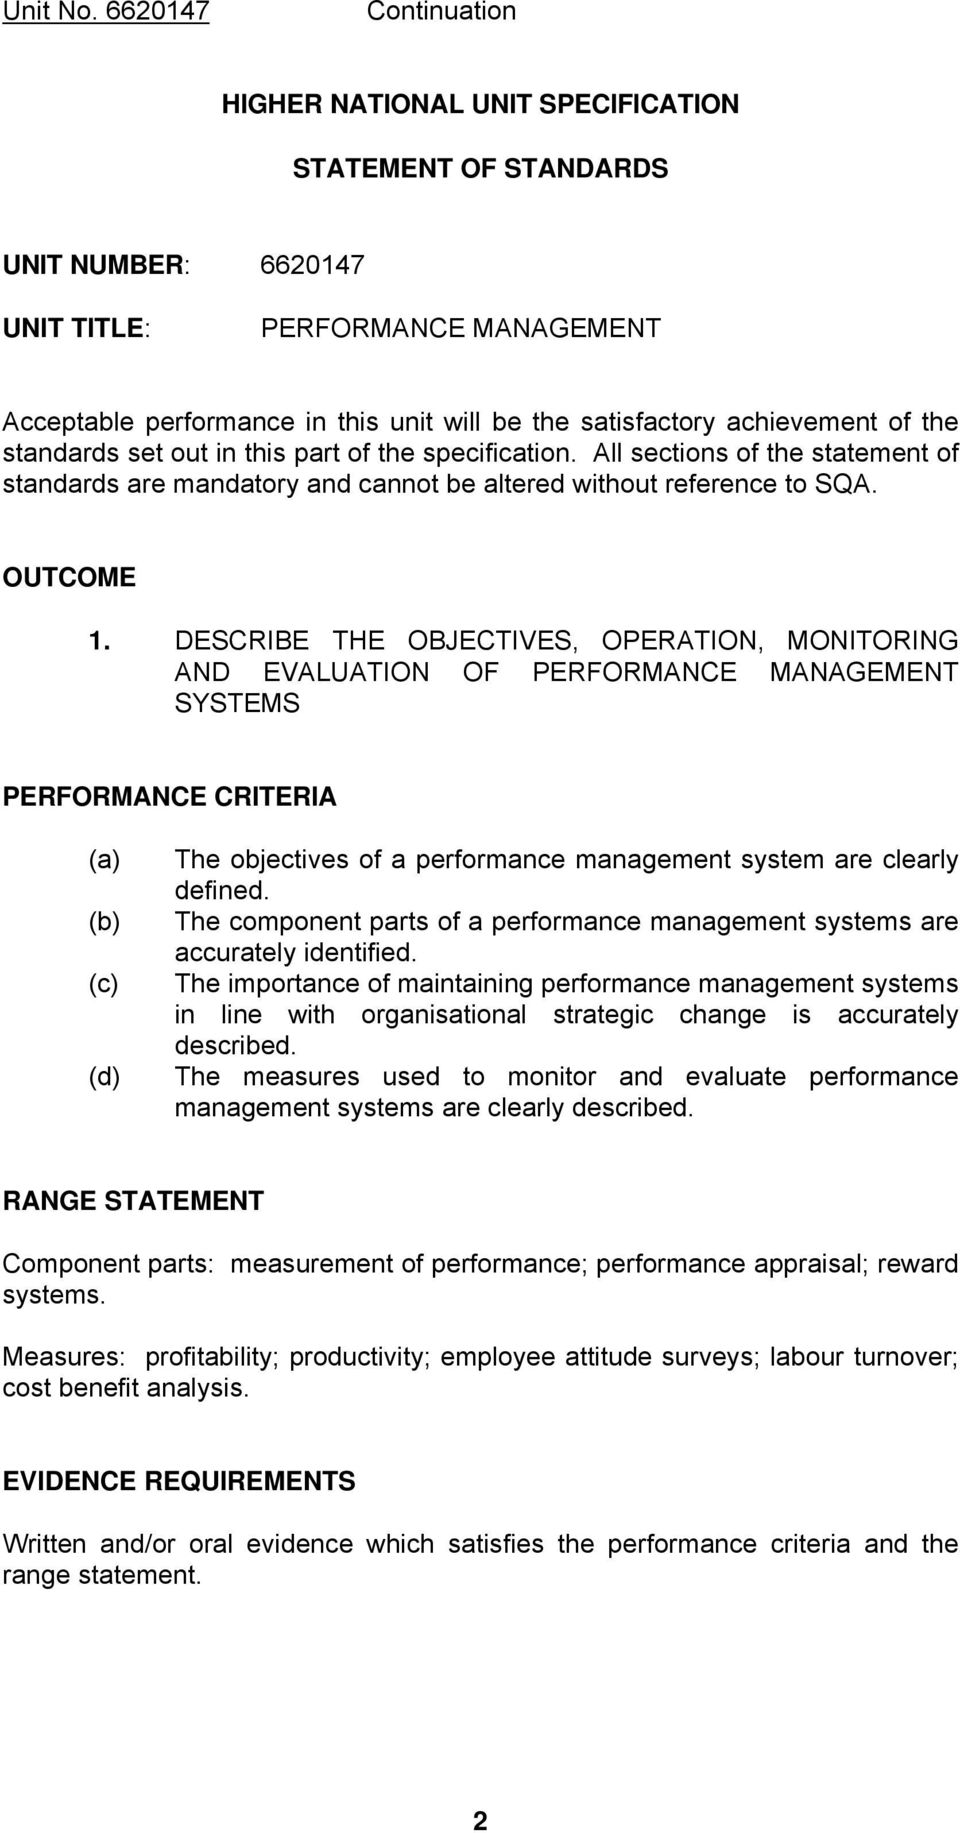 DESCRIBE THE OBJECTIVES, OPERATION, MONITORING AND EVALUATION OF PERFORMANCE MANAGEMENT SYSTEMS PERFORMANCE CRITERIA (a) (b) (c) (d) The objectives of a performance management system are clearly